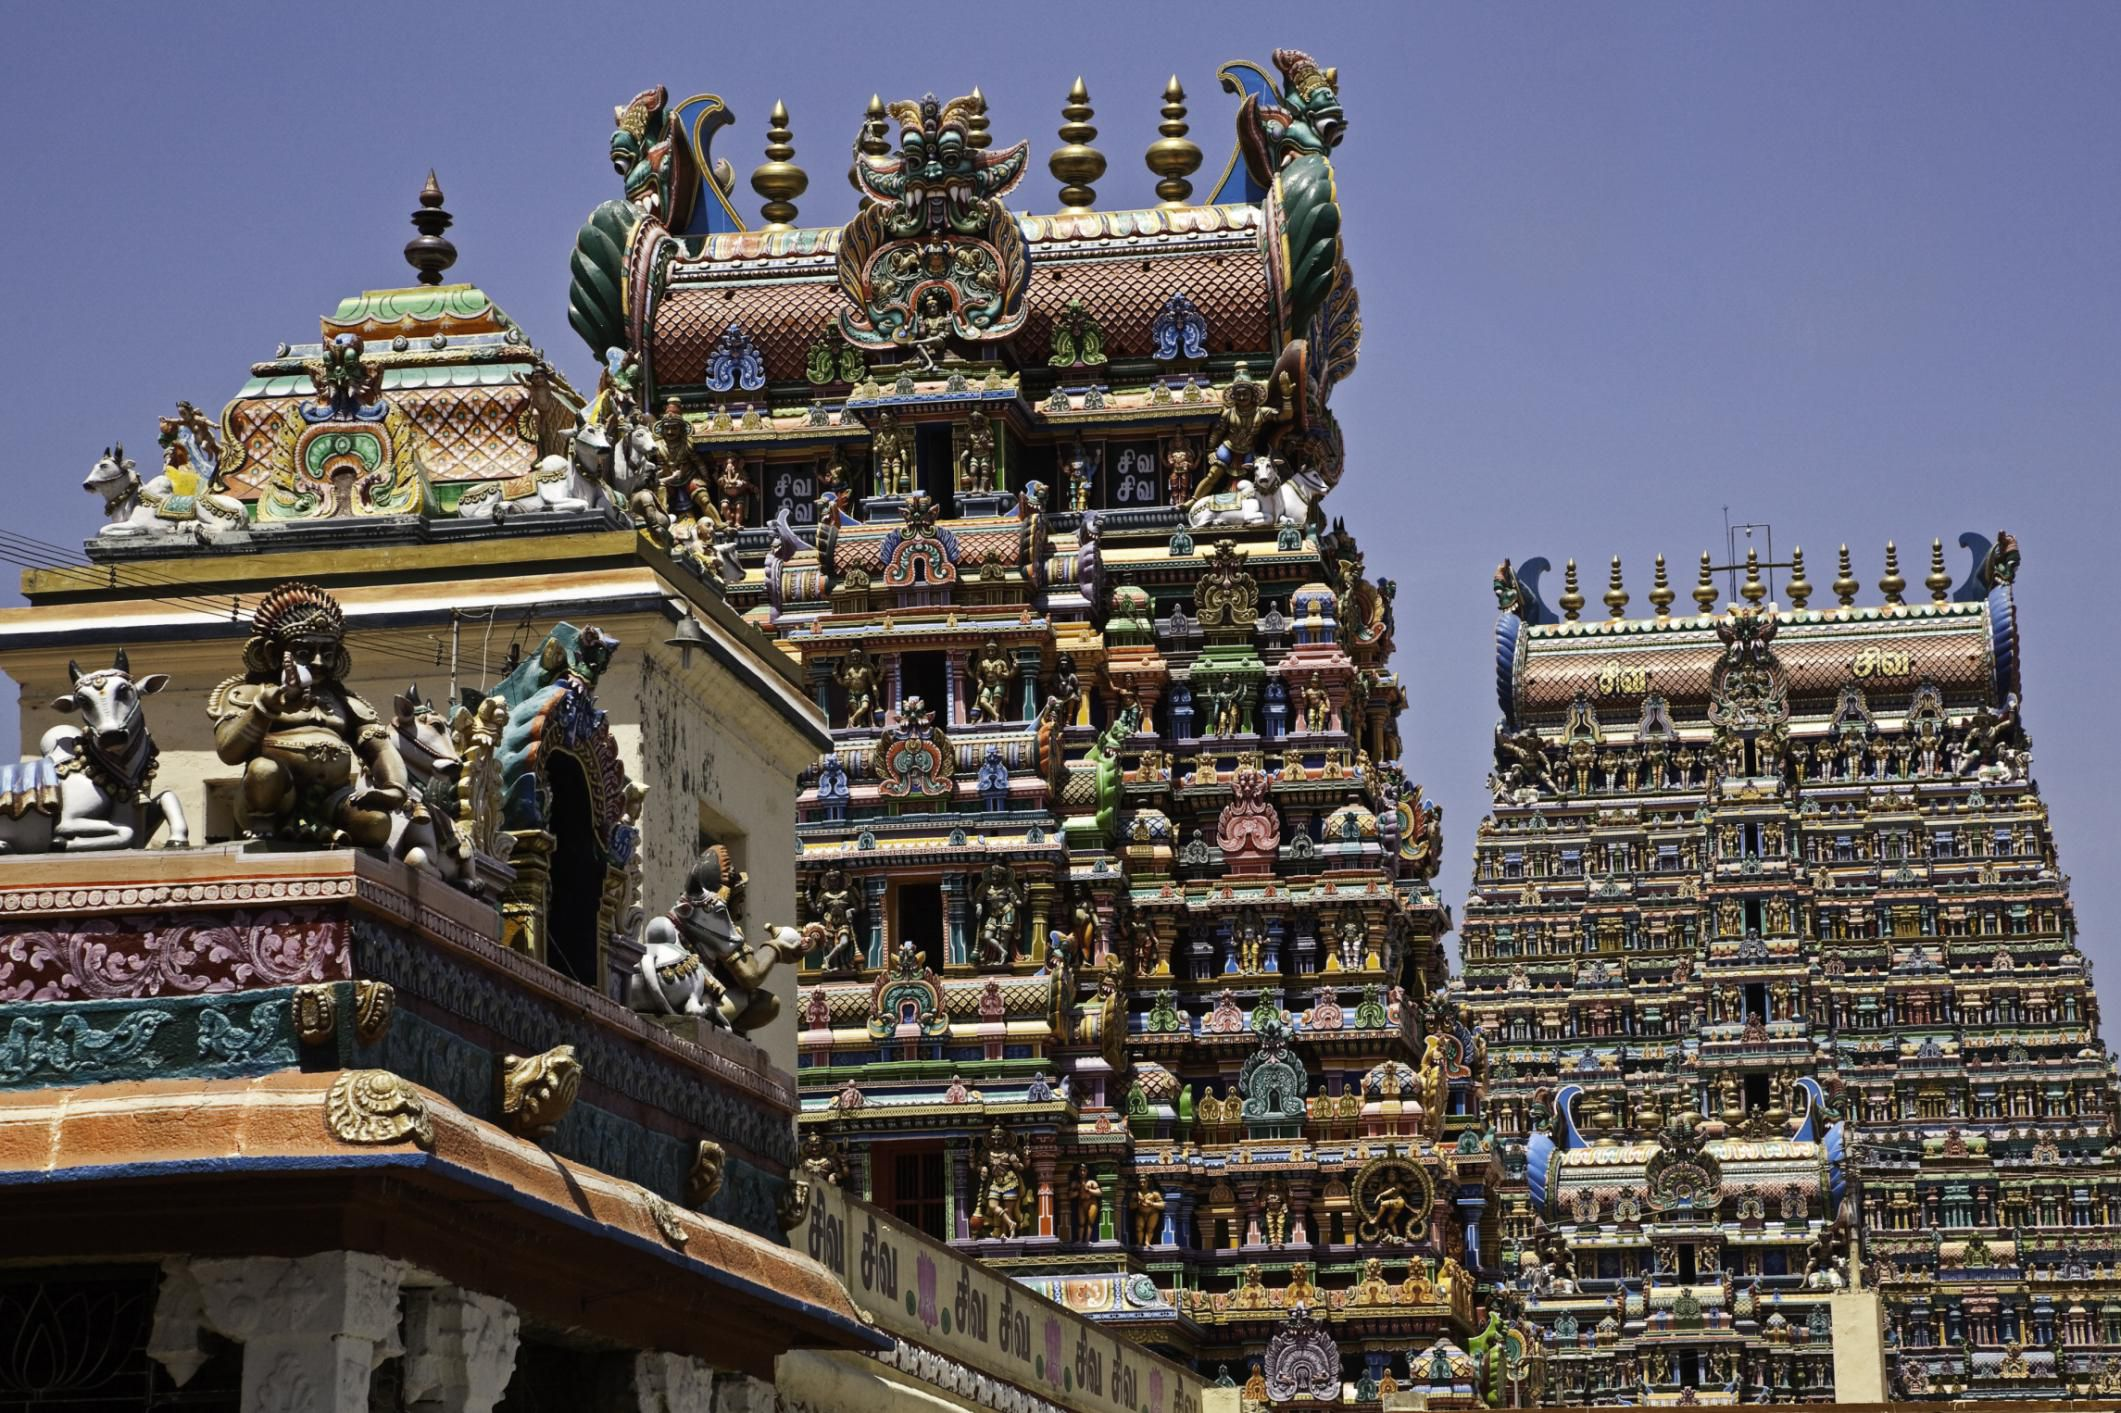 History of Hindu Temples Through the Ages